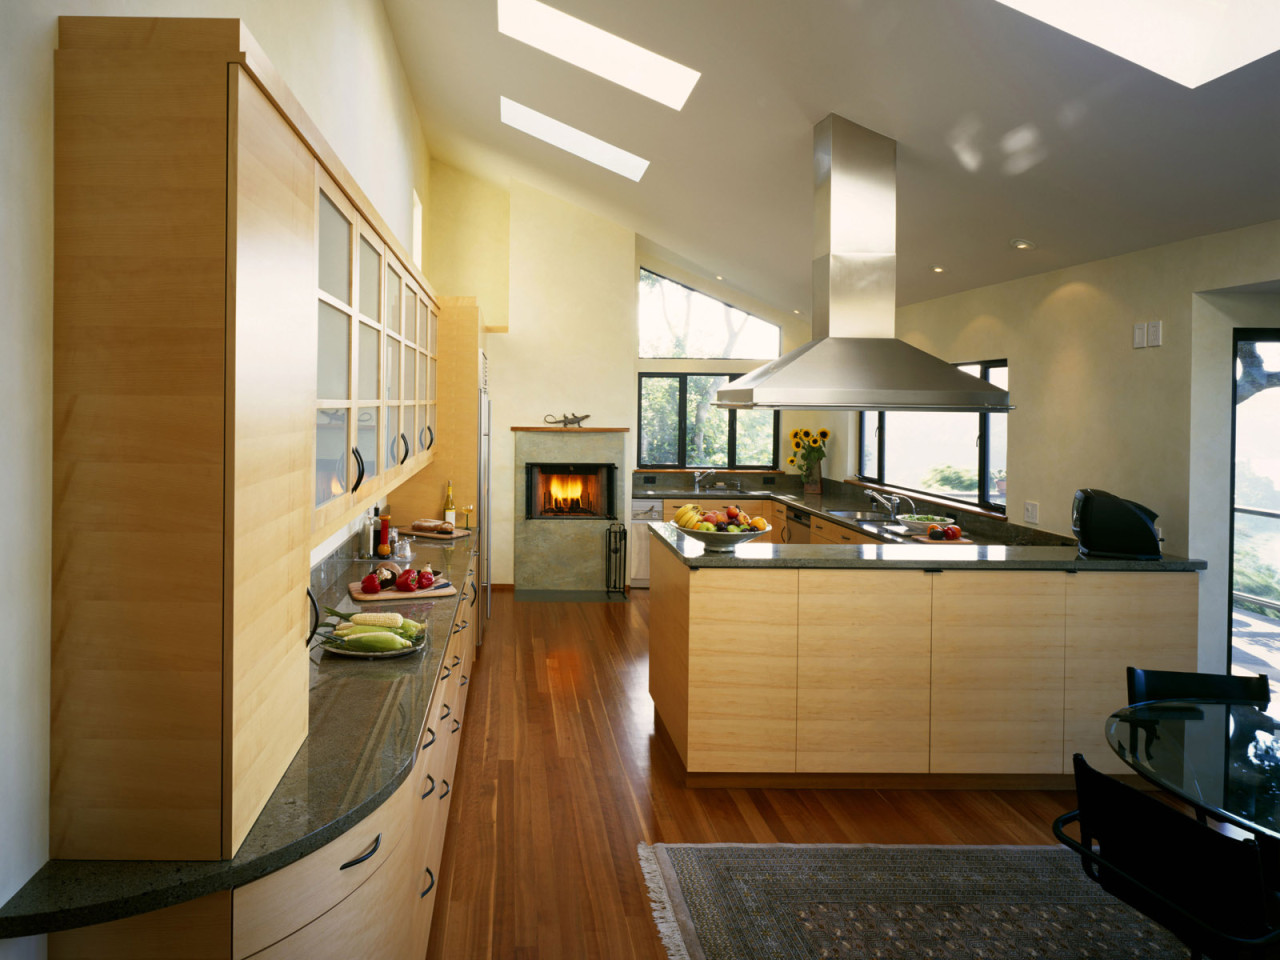 interior-design-ideas-kitchen-gbnoph0u.jpg